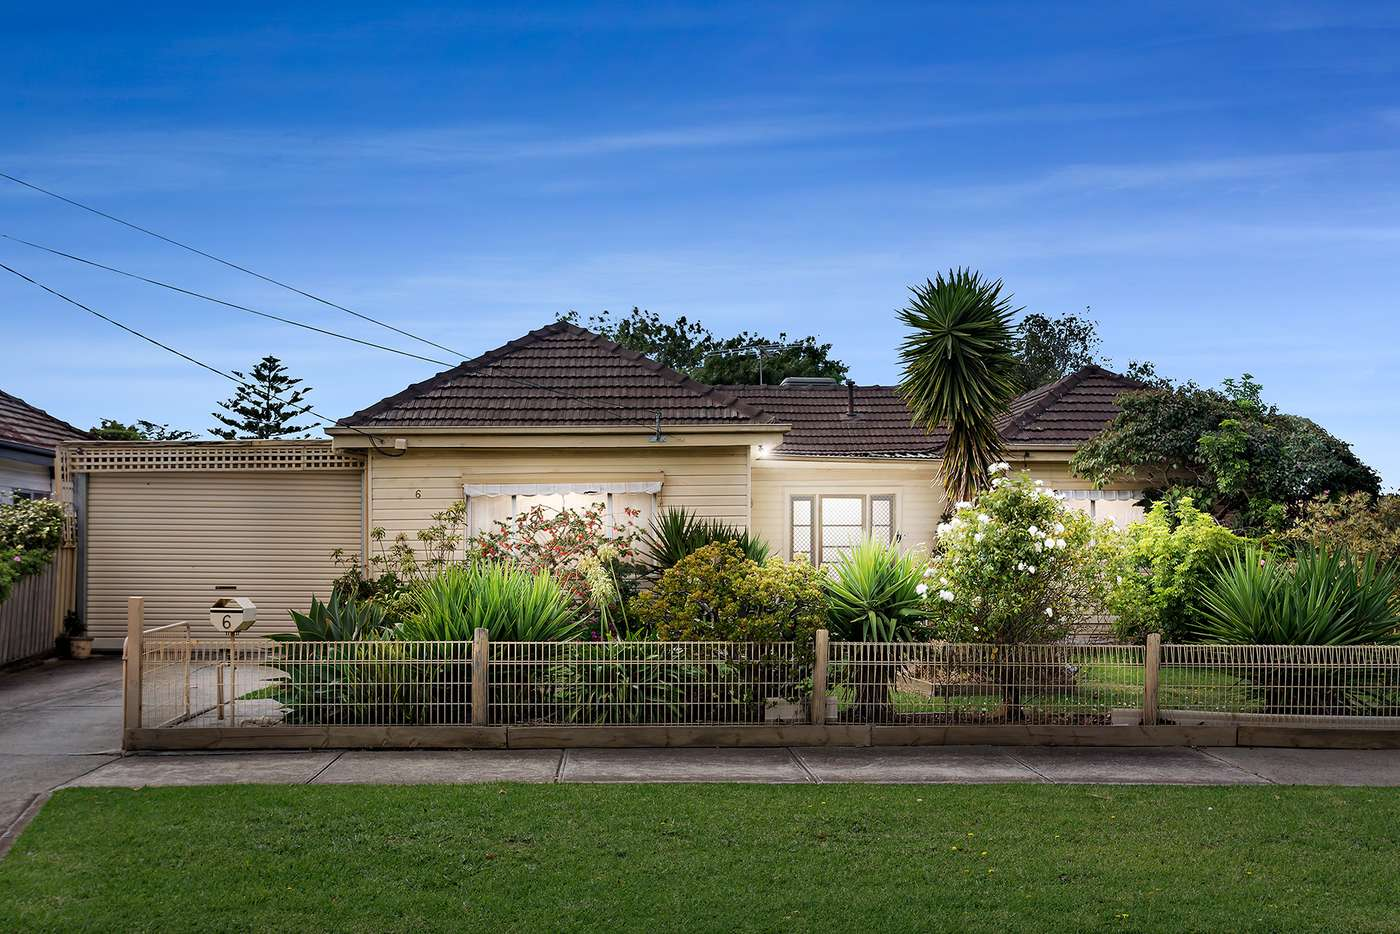 Main view of Homely house listing, 6 Sturdee Street, Reservoir VIC 3073